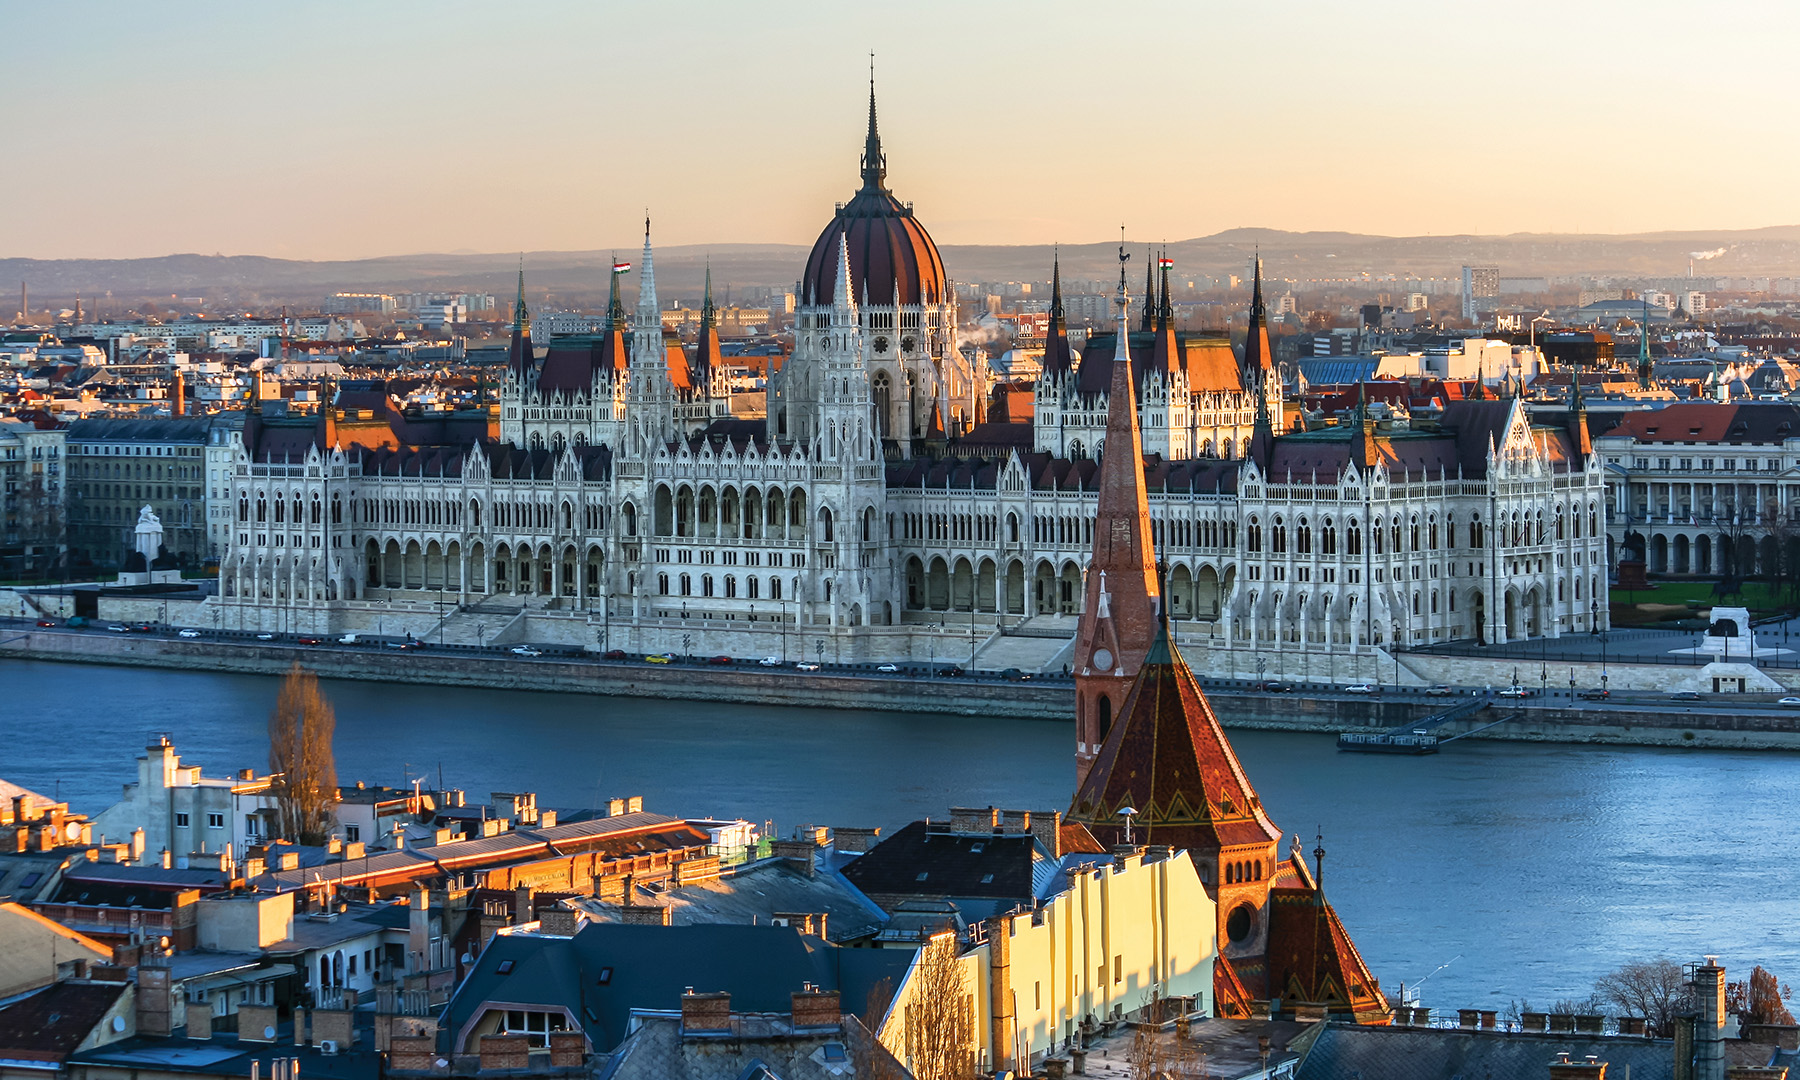 The Hungarian Parliament building along the Danube in Budapest. Photos by Flickr